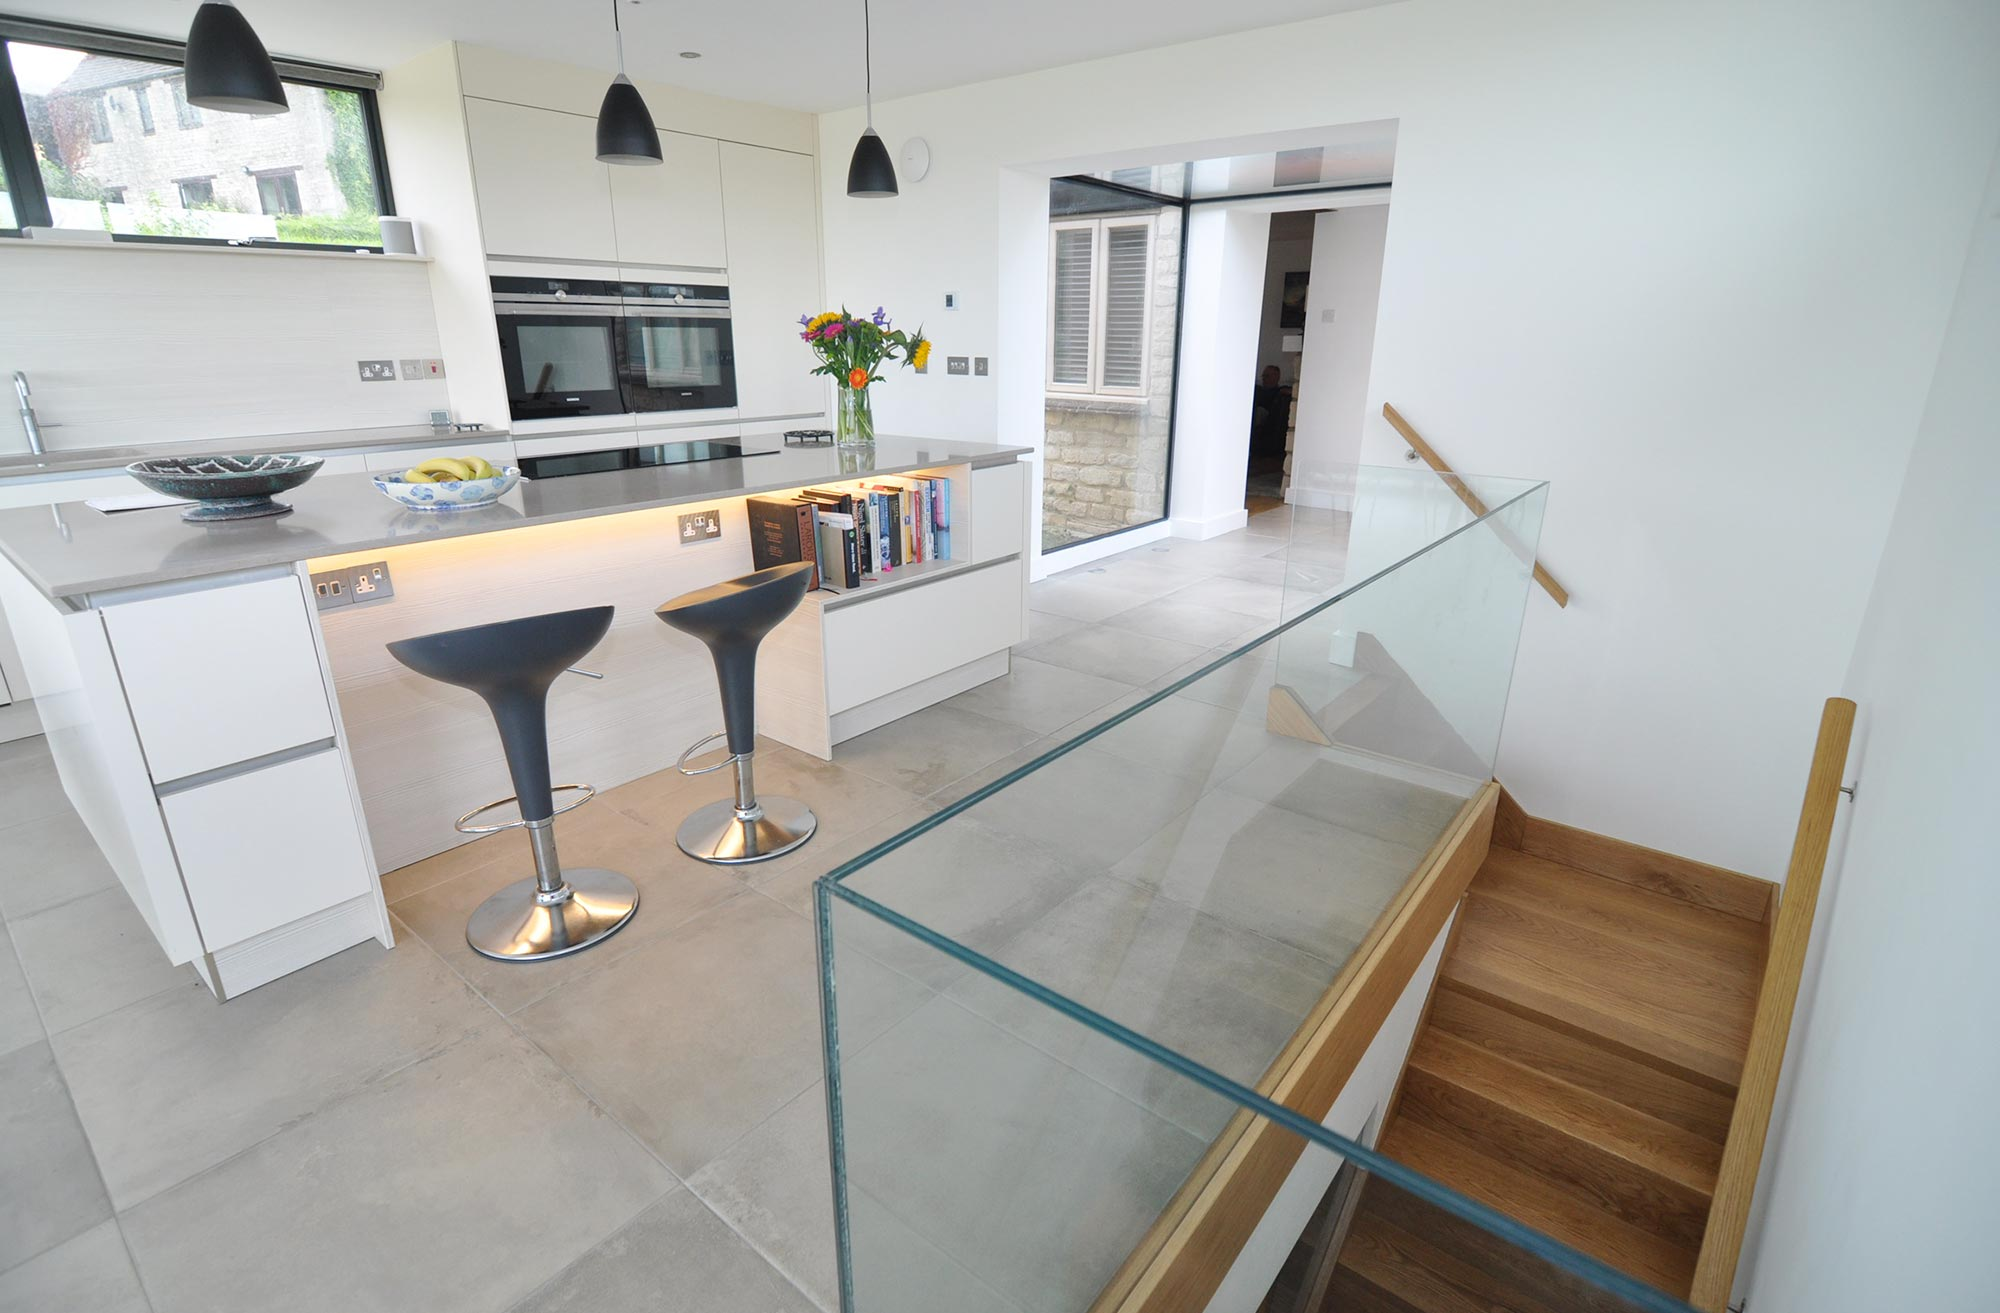 Kitchens Cirencester, Voga Interiors - Cleeve Hill Kitchen Project